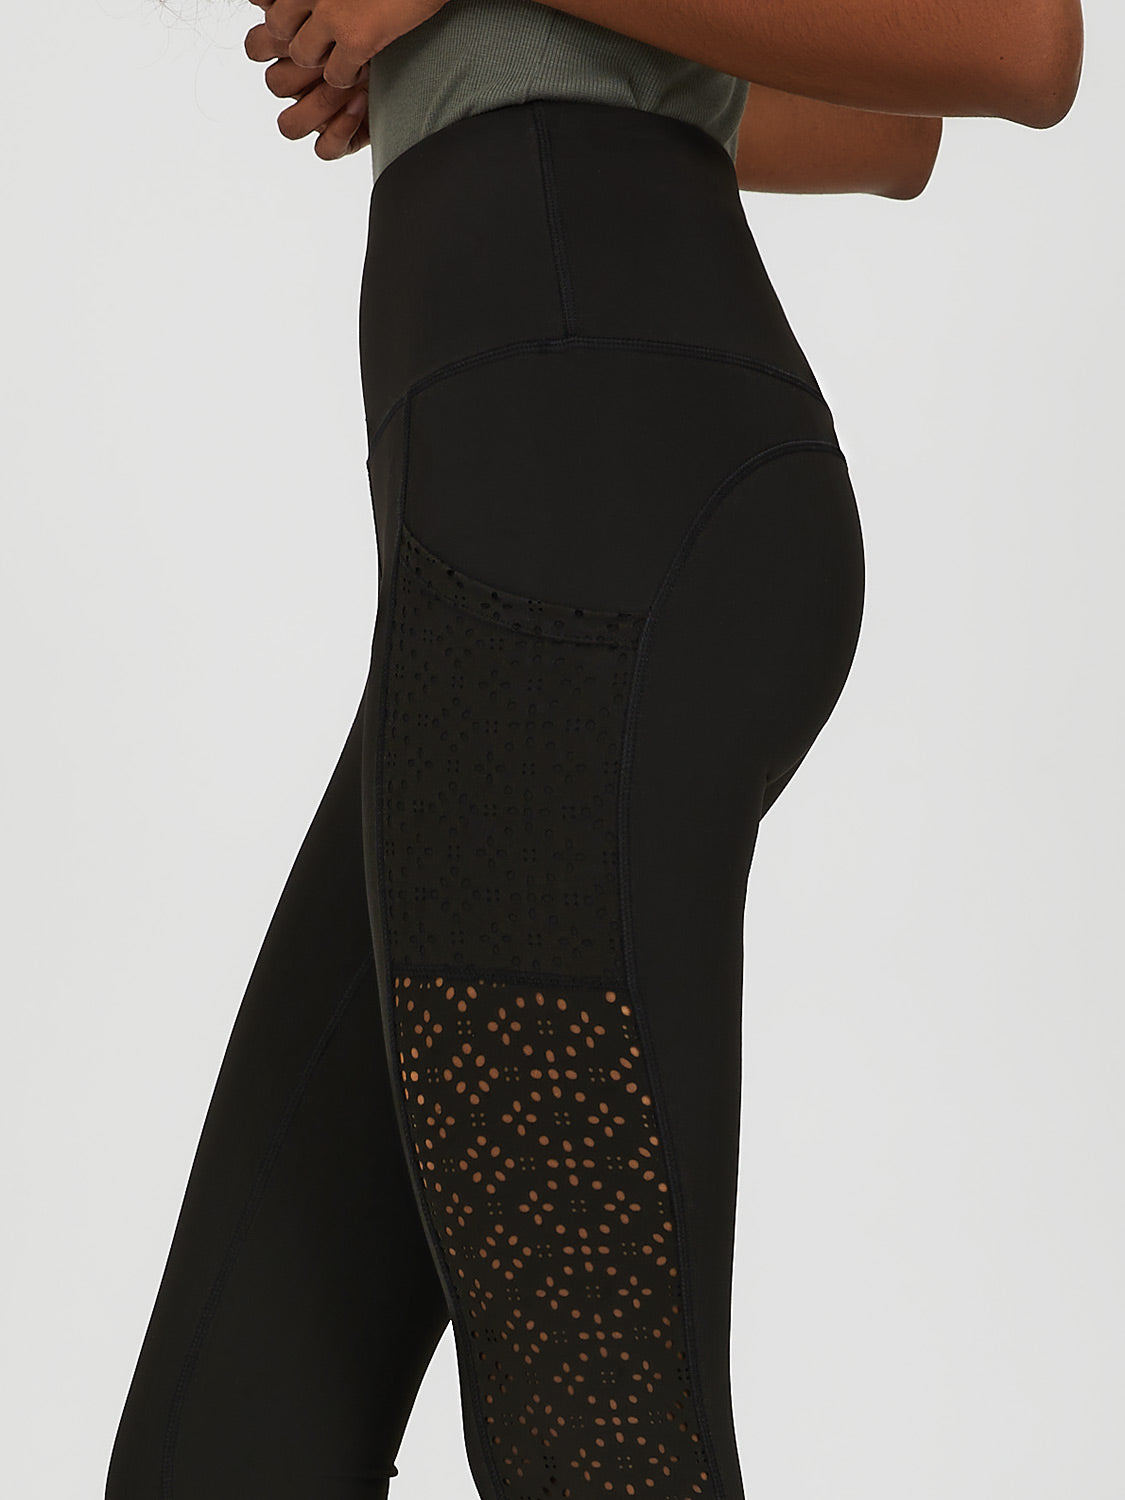 Laser Cut Knit Legging